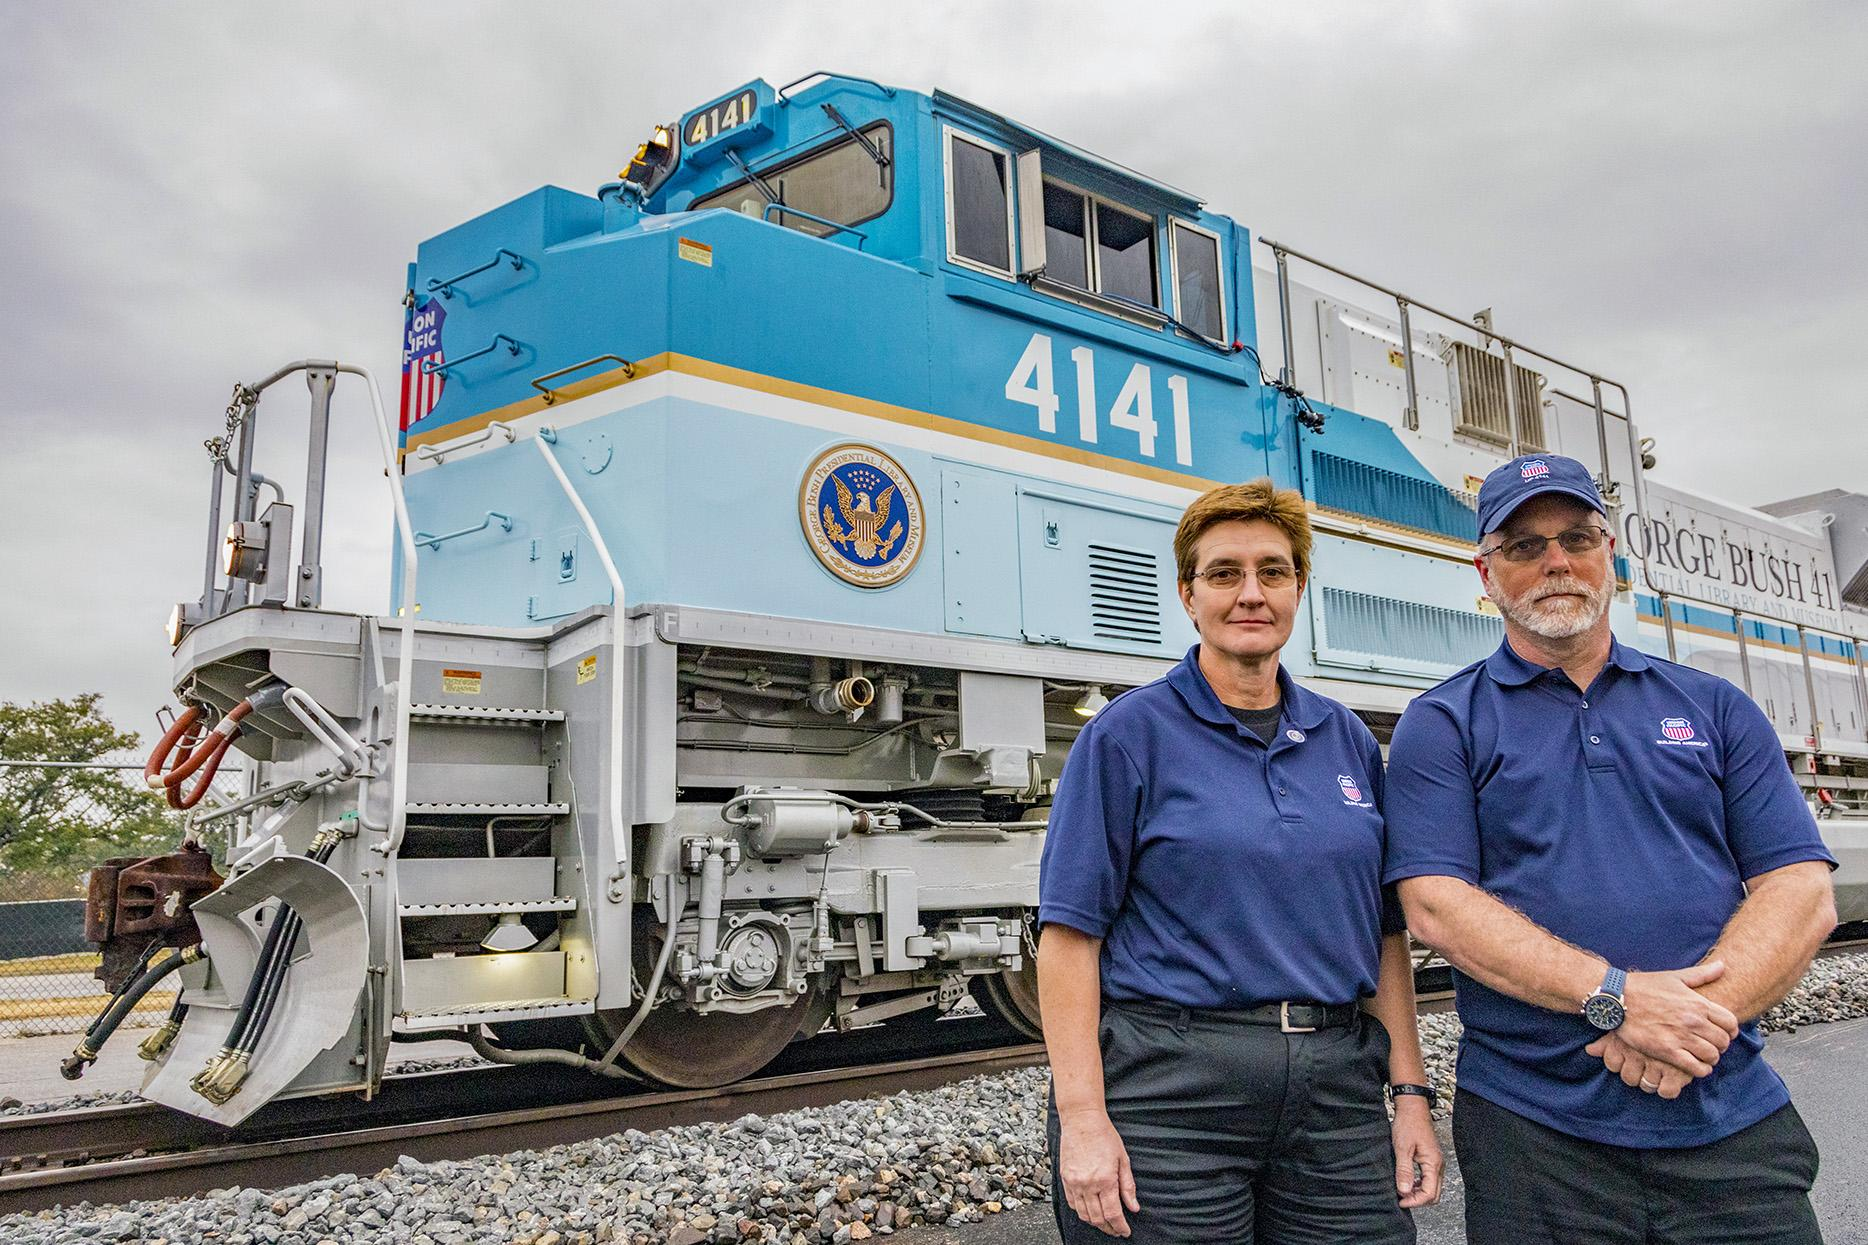 Up Bush Funeral Train Crew Just Taking Care Of Another Sailor